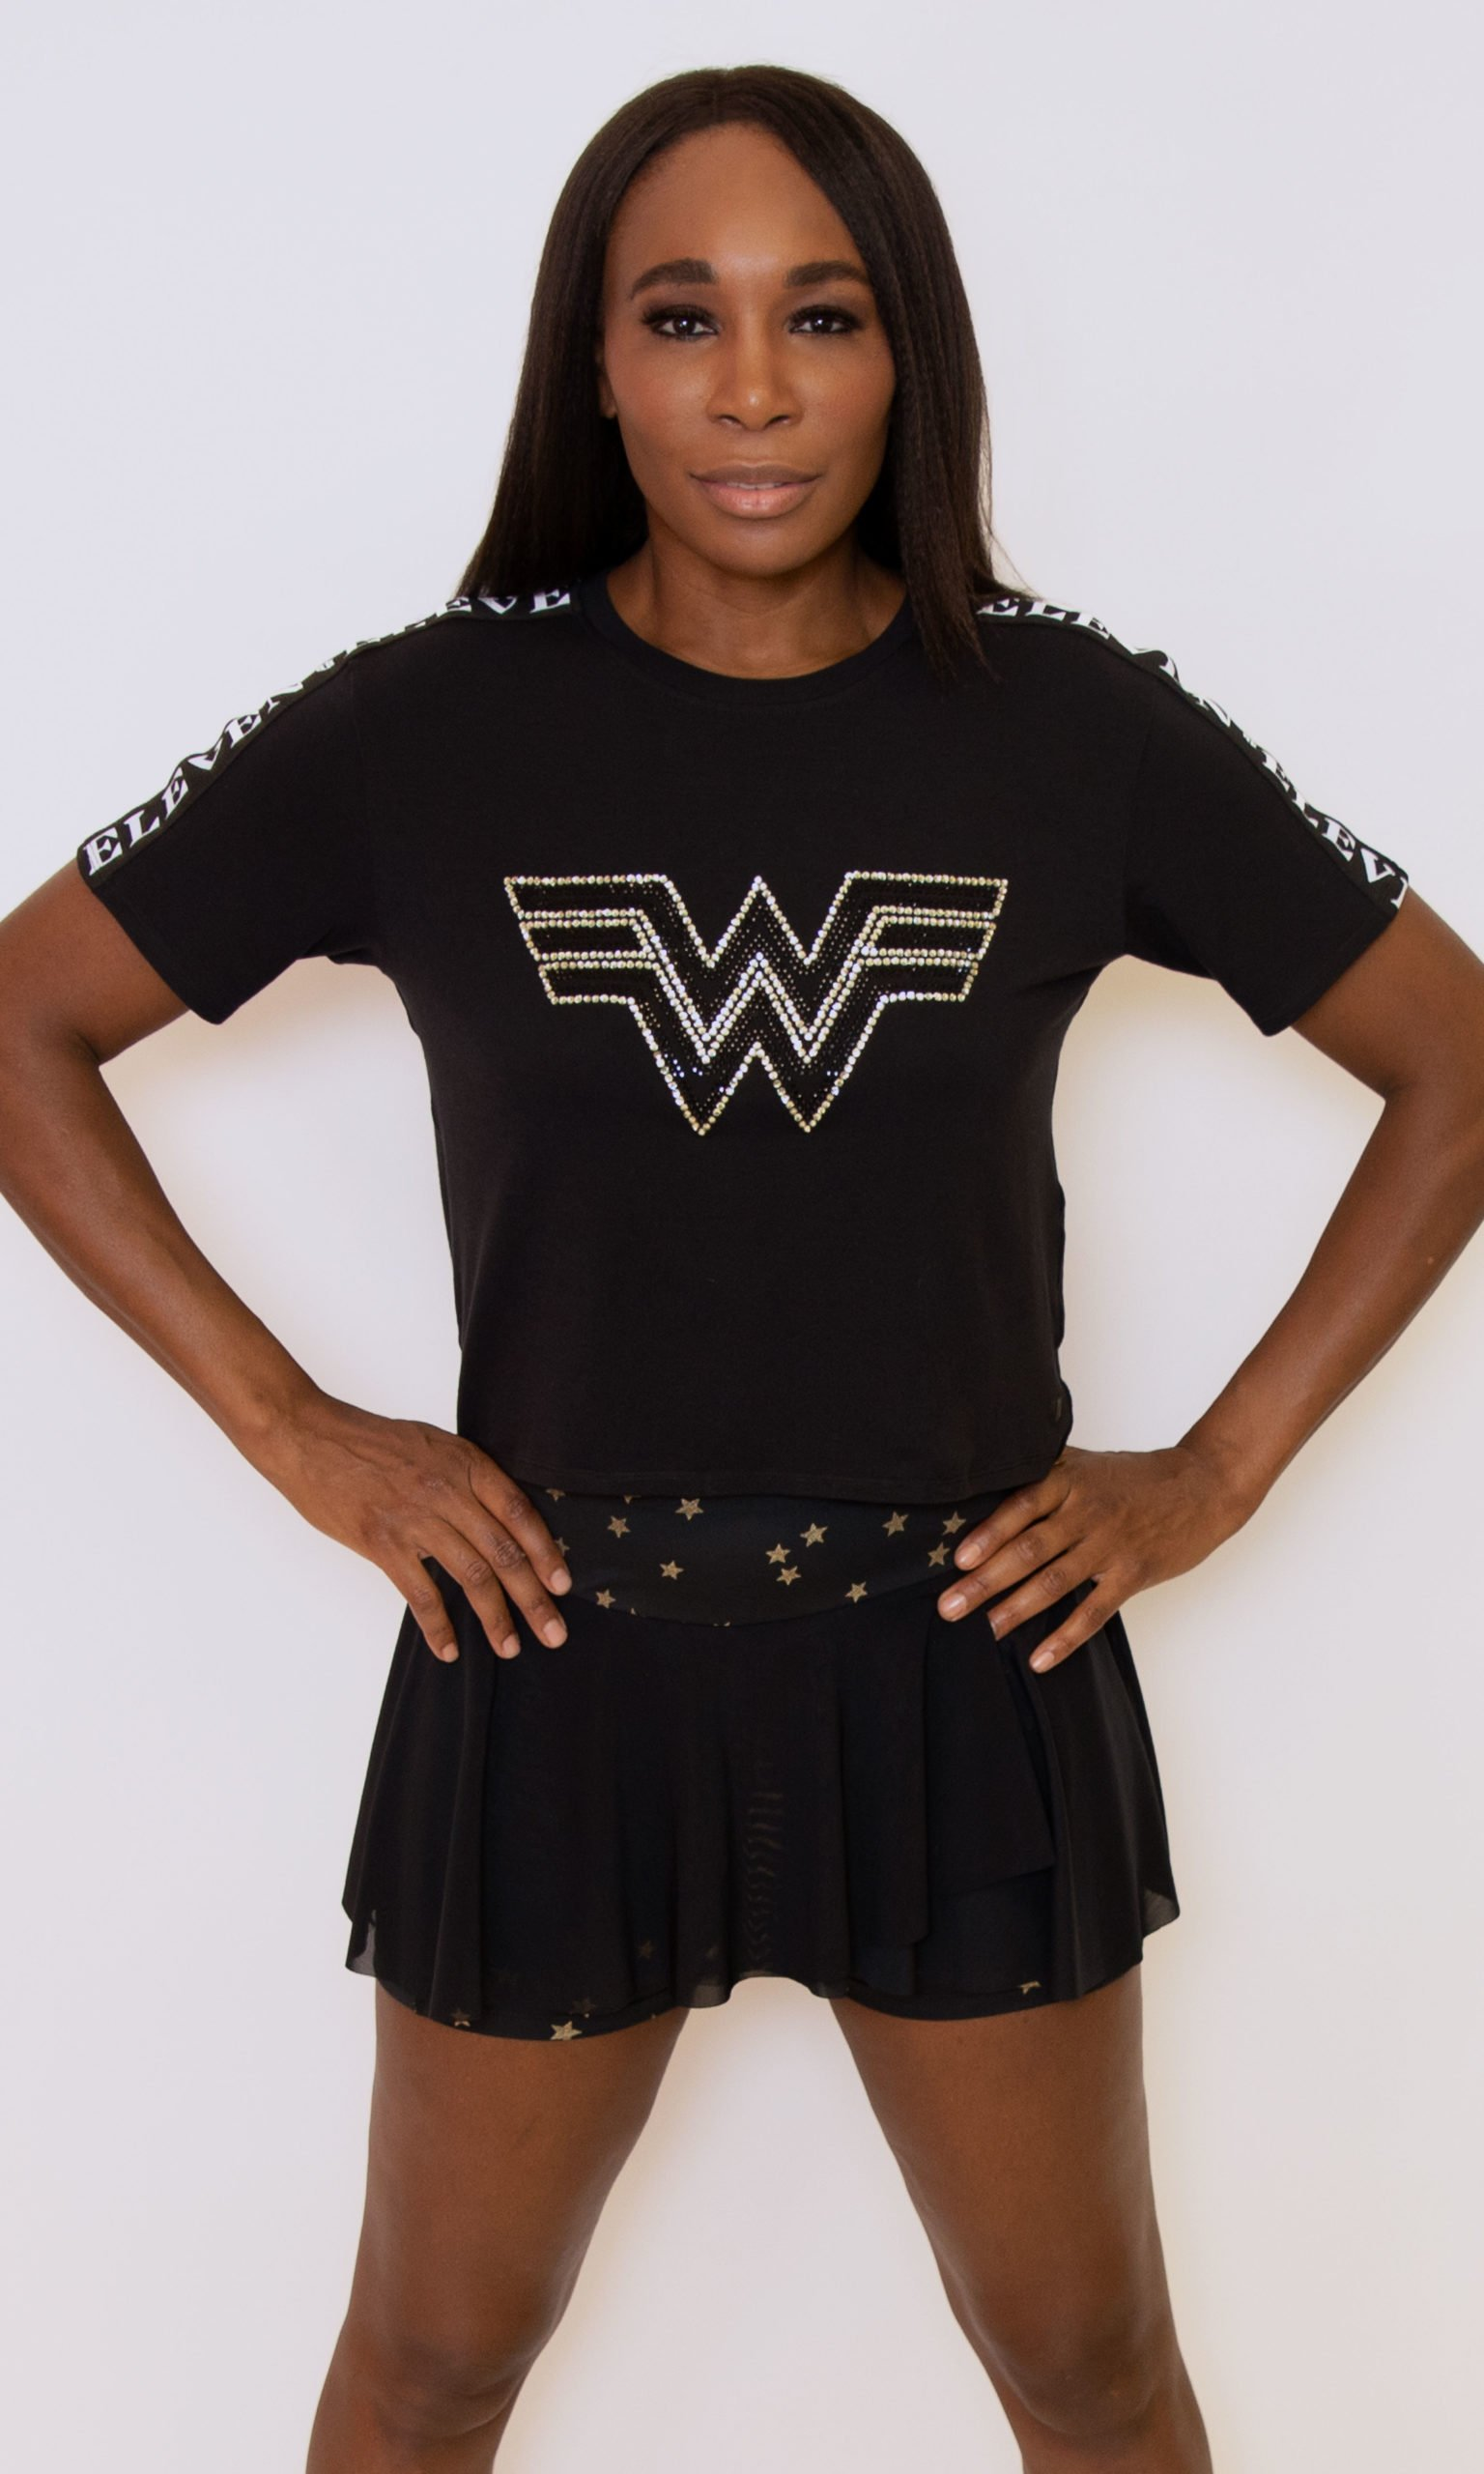 EleVen by Venus Williams x Wonder Woman collection includes tennis wear, t-shirts, and hoodies 14